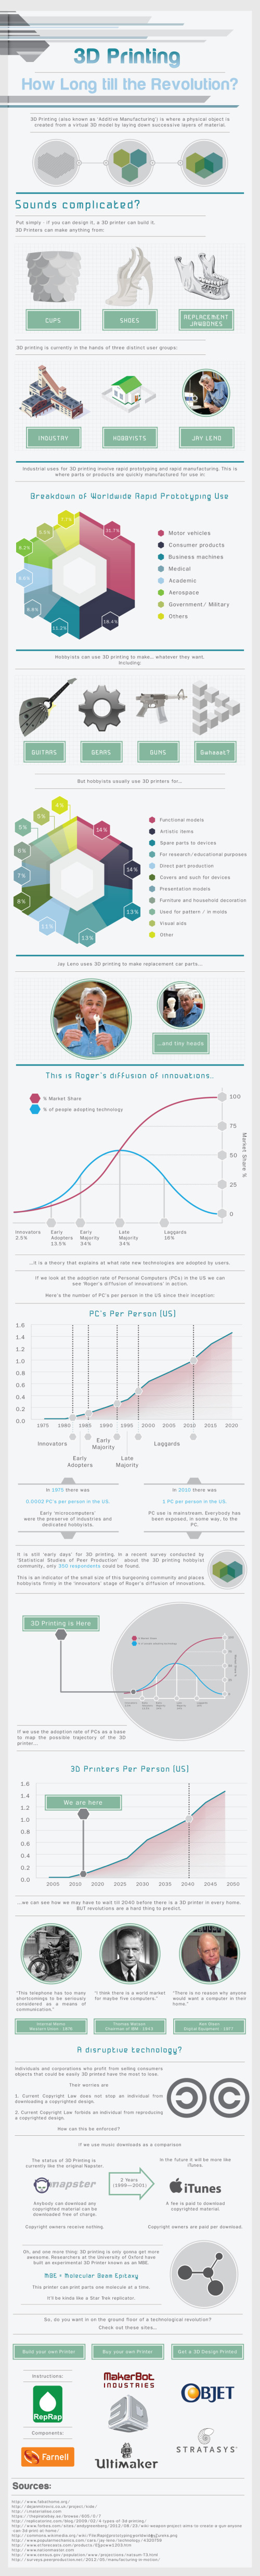 3D Printing: How Long Till The Revolution? infographic